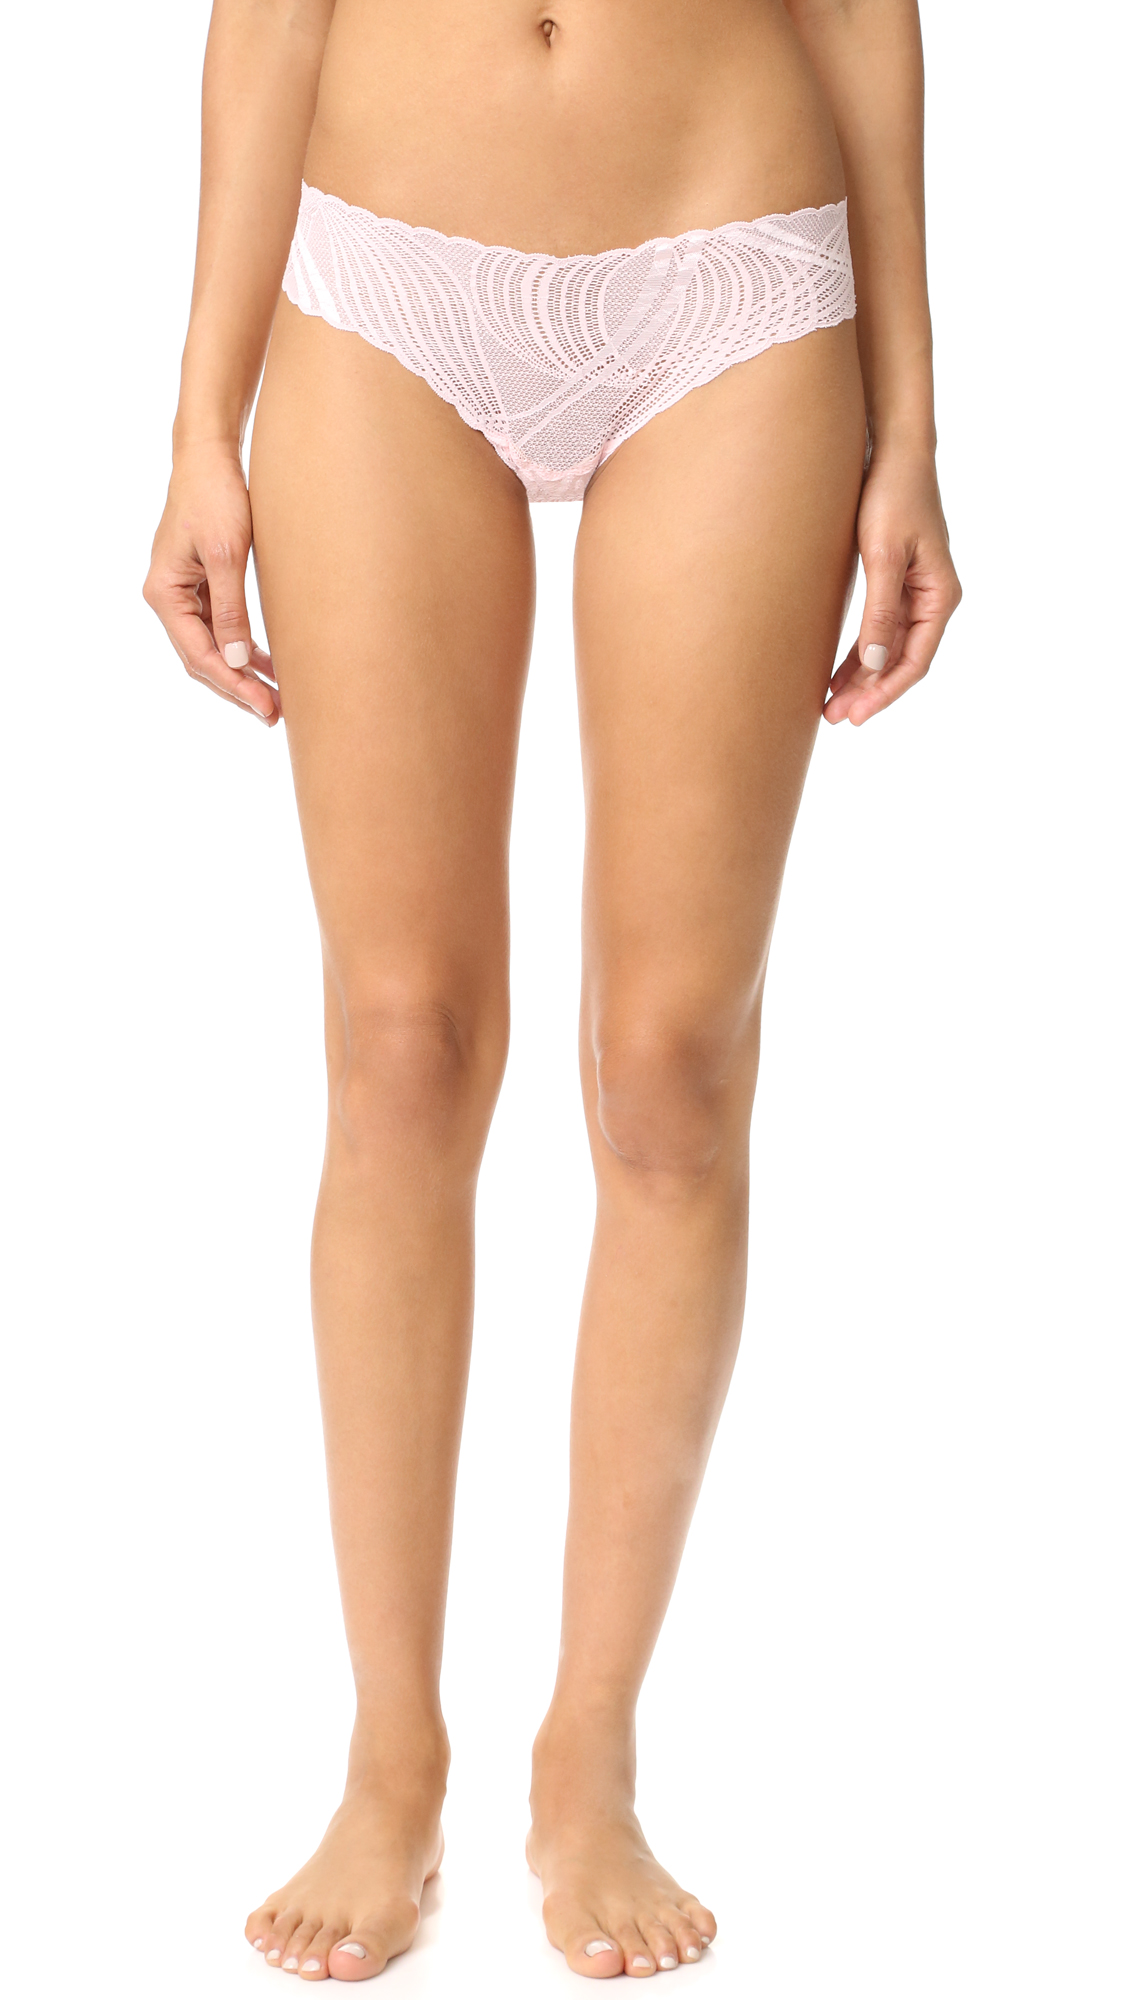 cosabella female 243279 cosabella minoa low rise thong pink lily